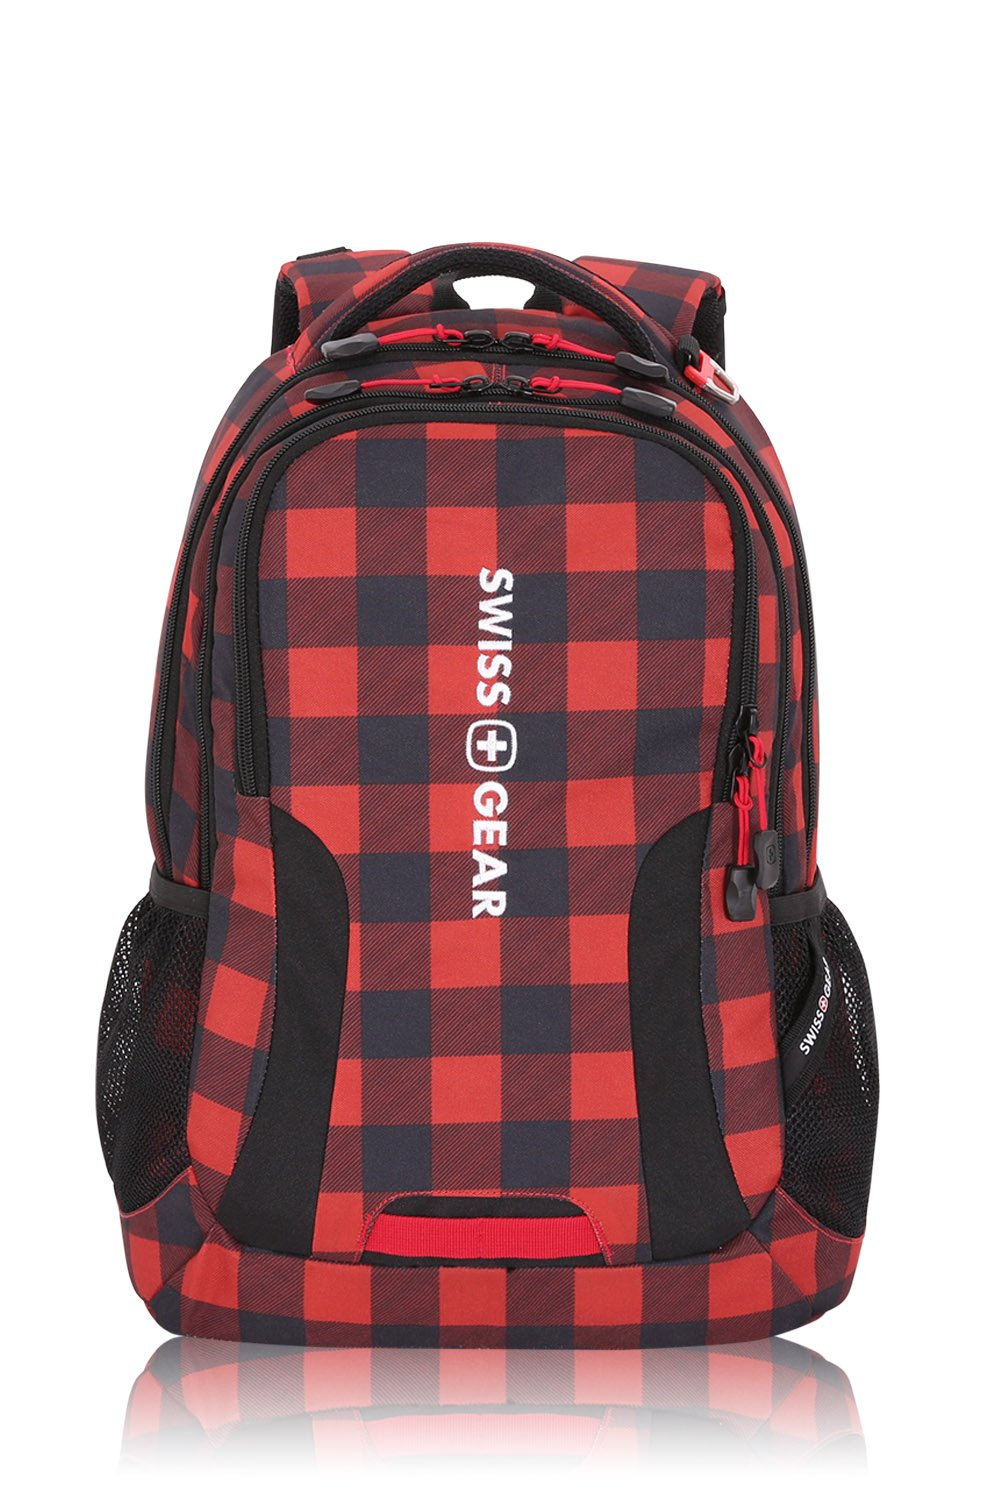 Swiss Gear SA5503 Lumberjack Laptop Backpack - Fits Most 15 inch Laptops and Tablets